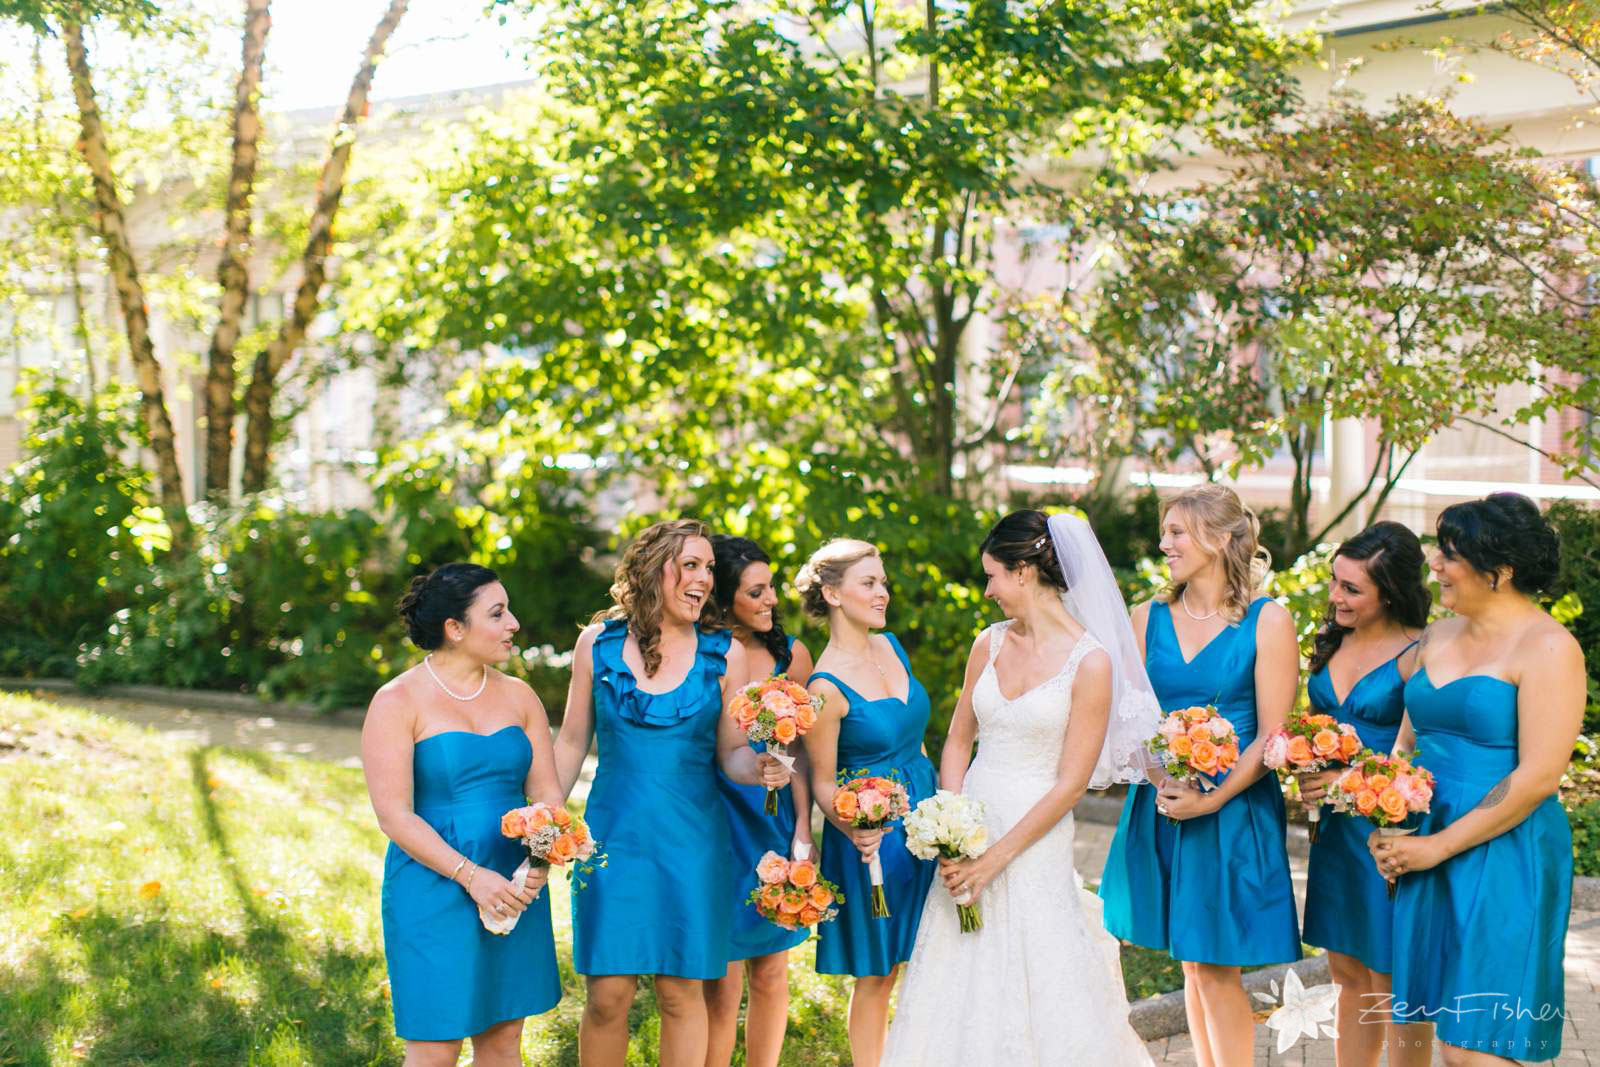 Casual bridal party portraits in garden on a sunny day in the fall, beautiful natural light.